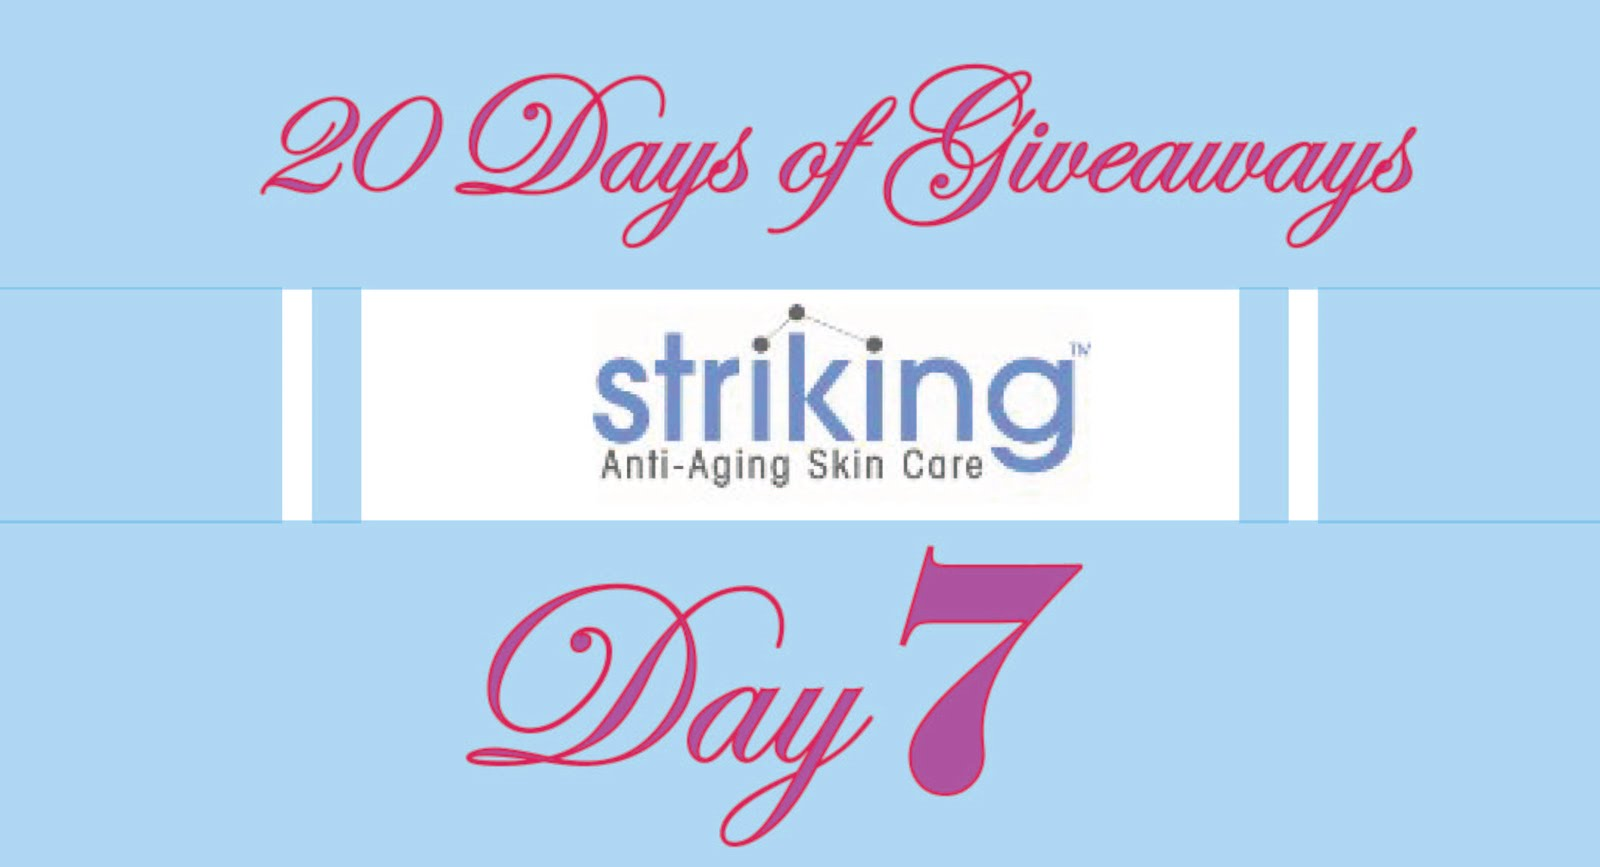 Striking Skin Care Blog: Day 7 of 20 Days of Giveaways ...